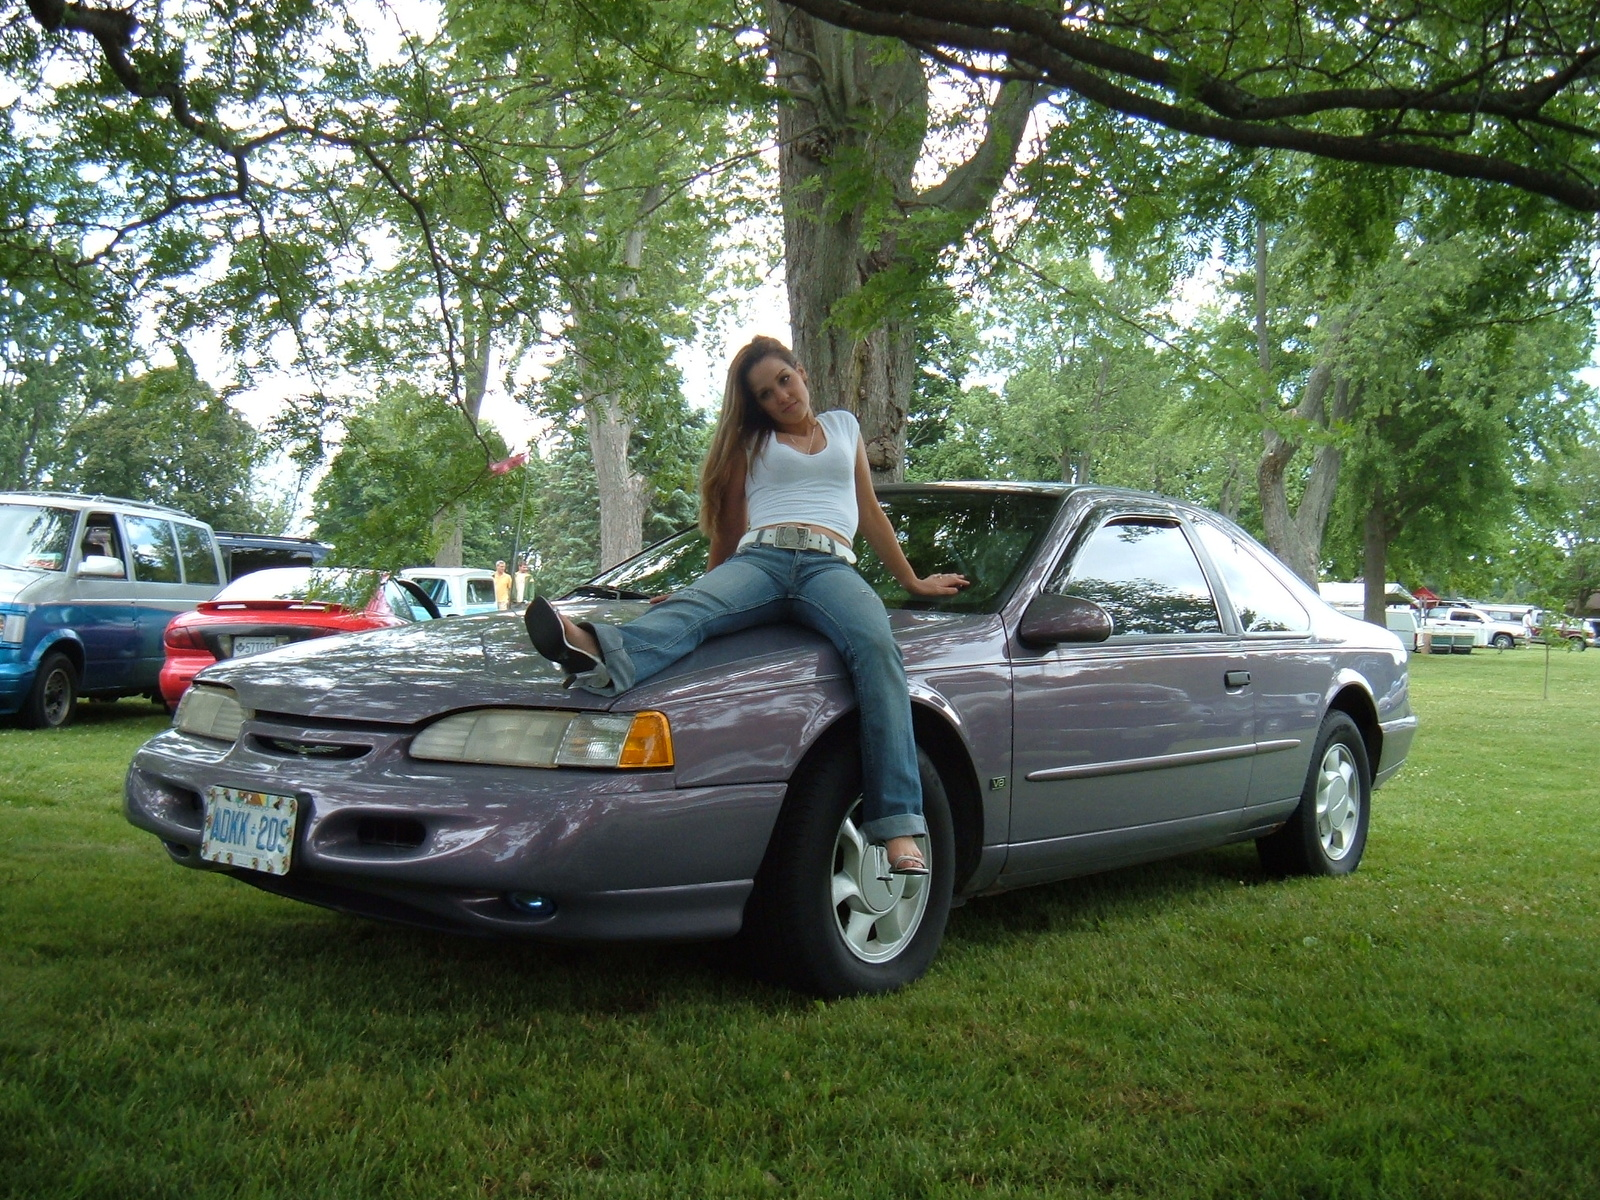 ford thunderbird 1995 pictures #8